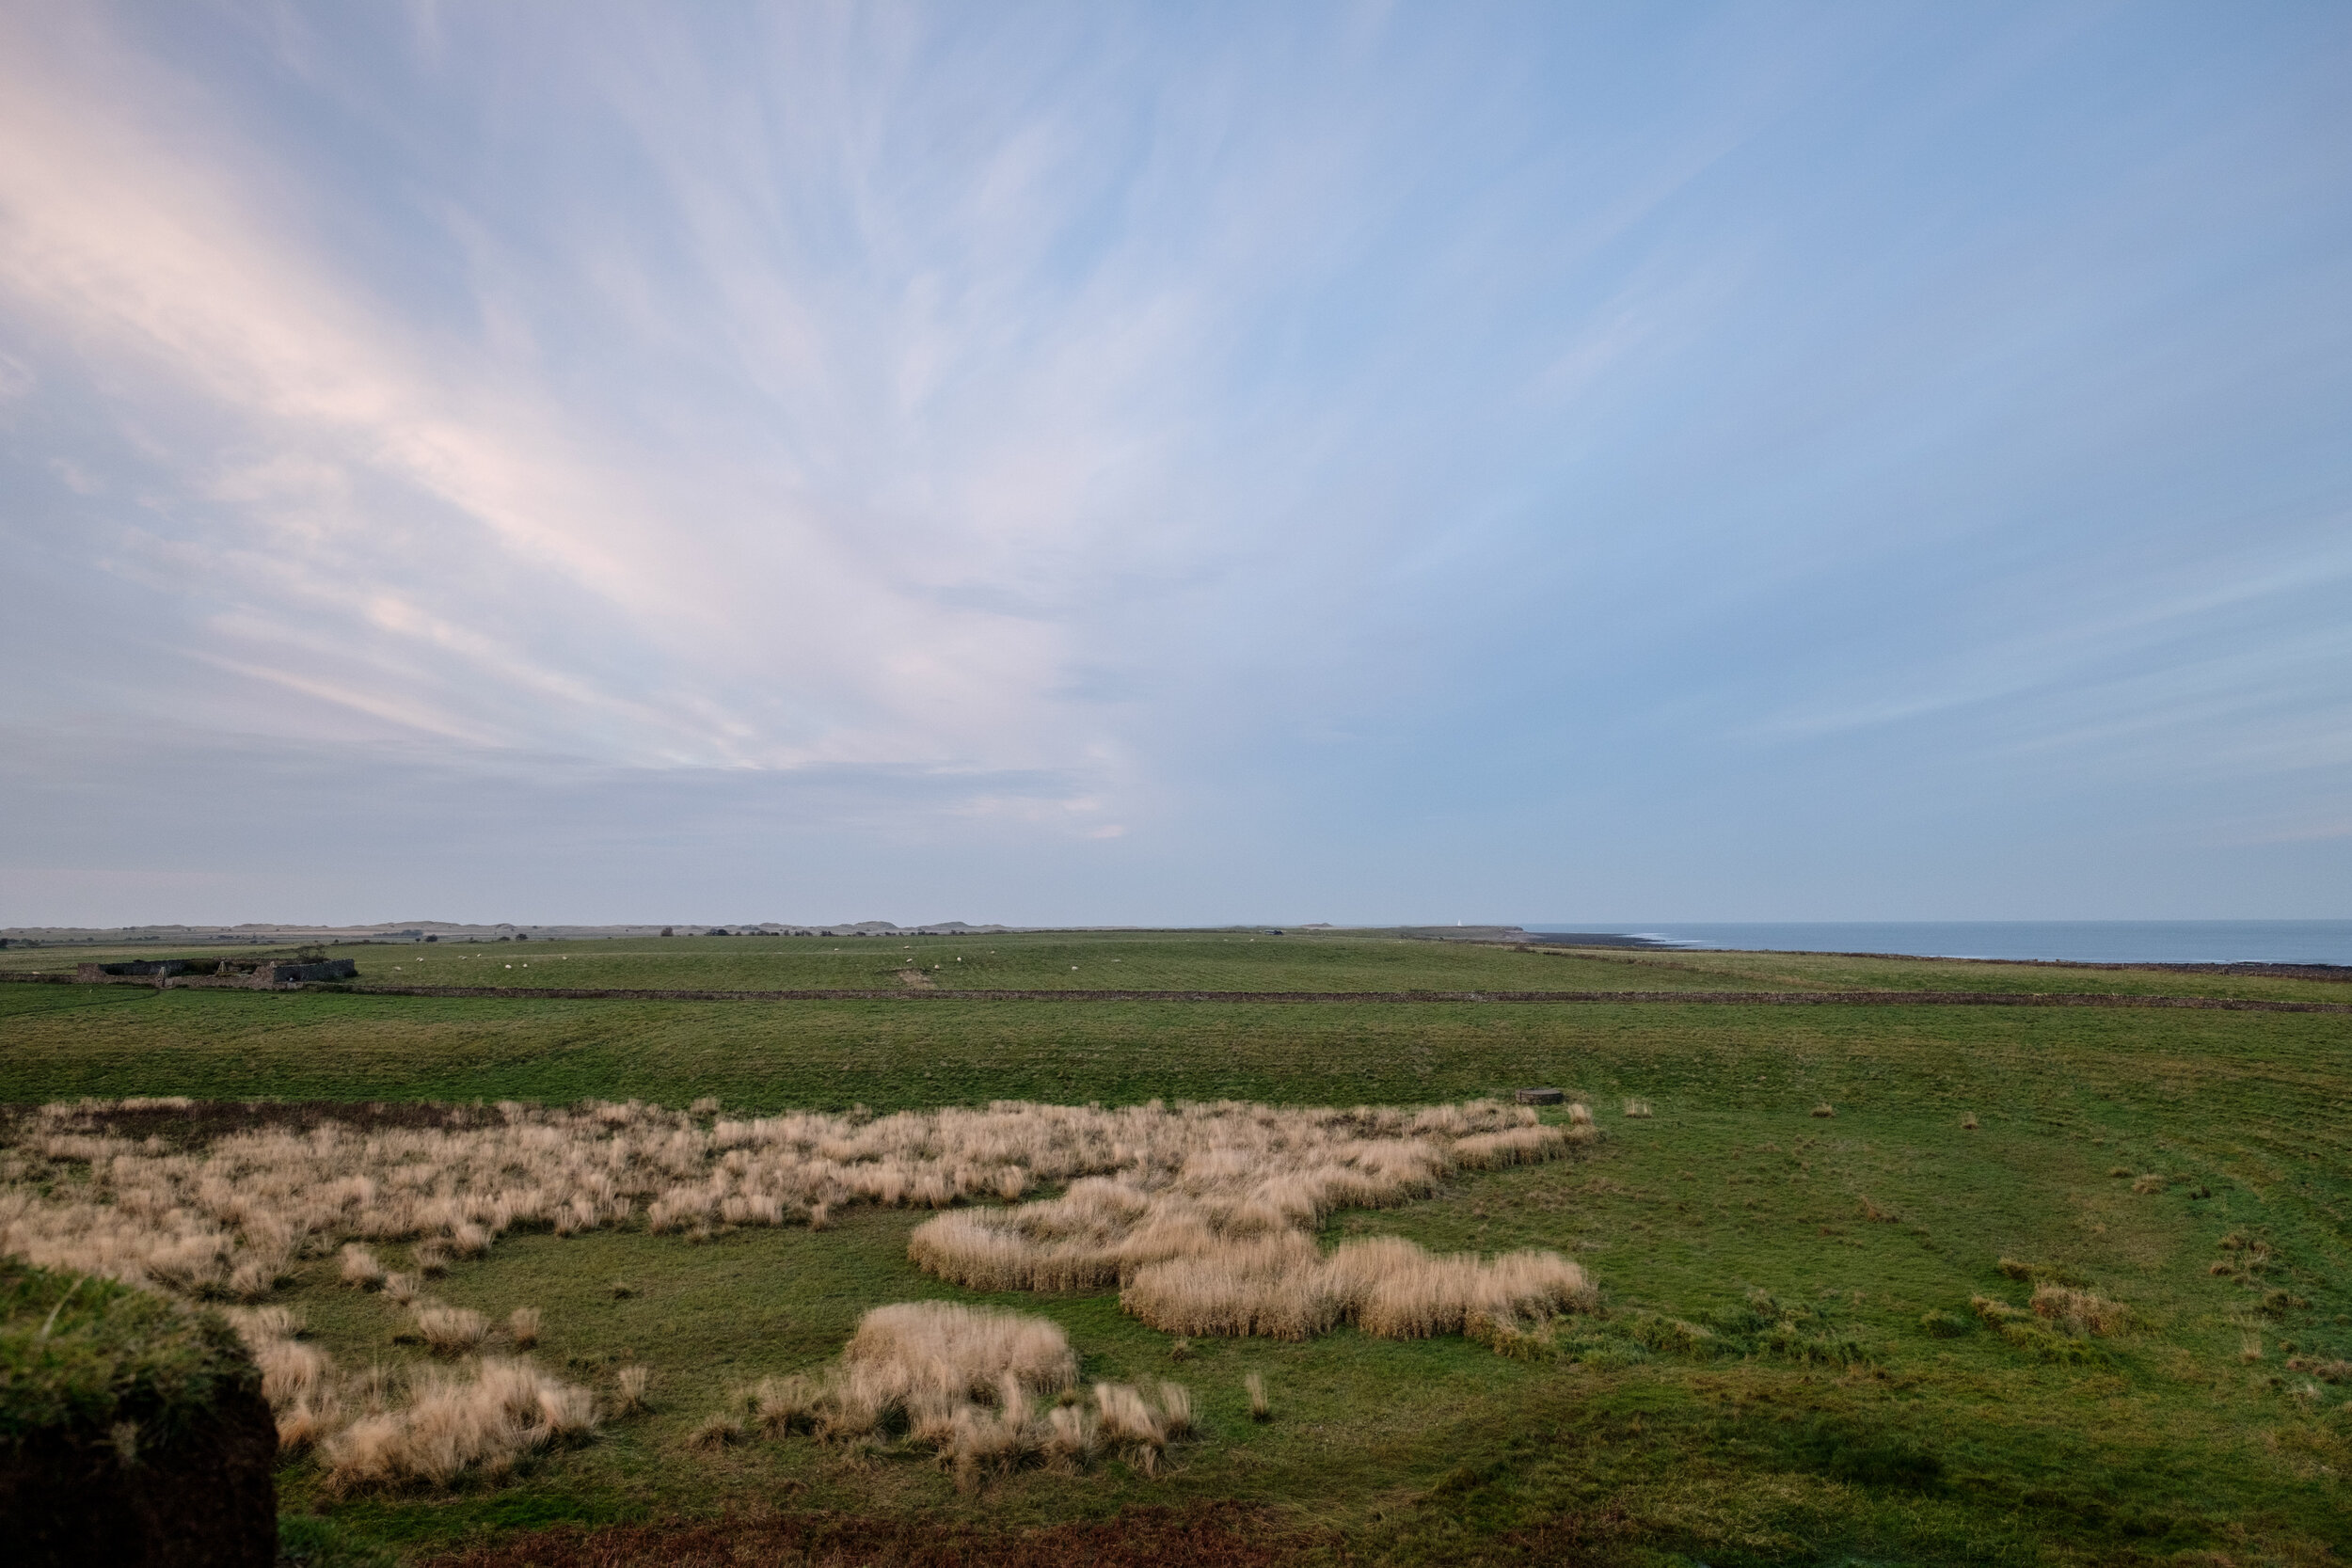 The bare landscape at Holy Island in England